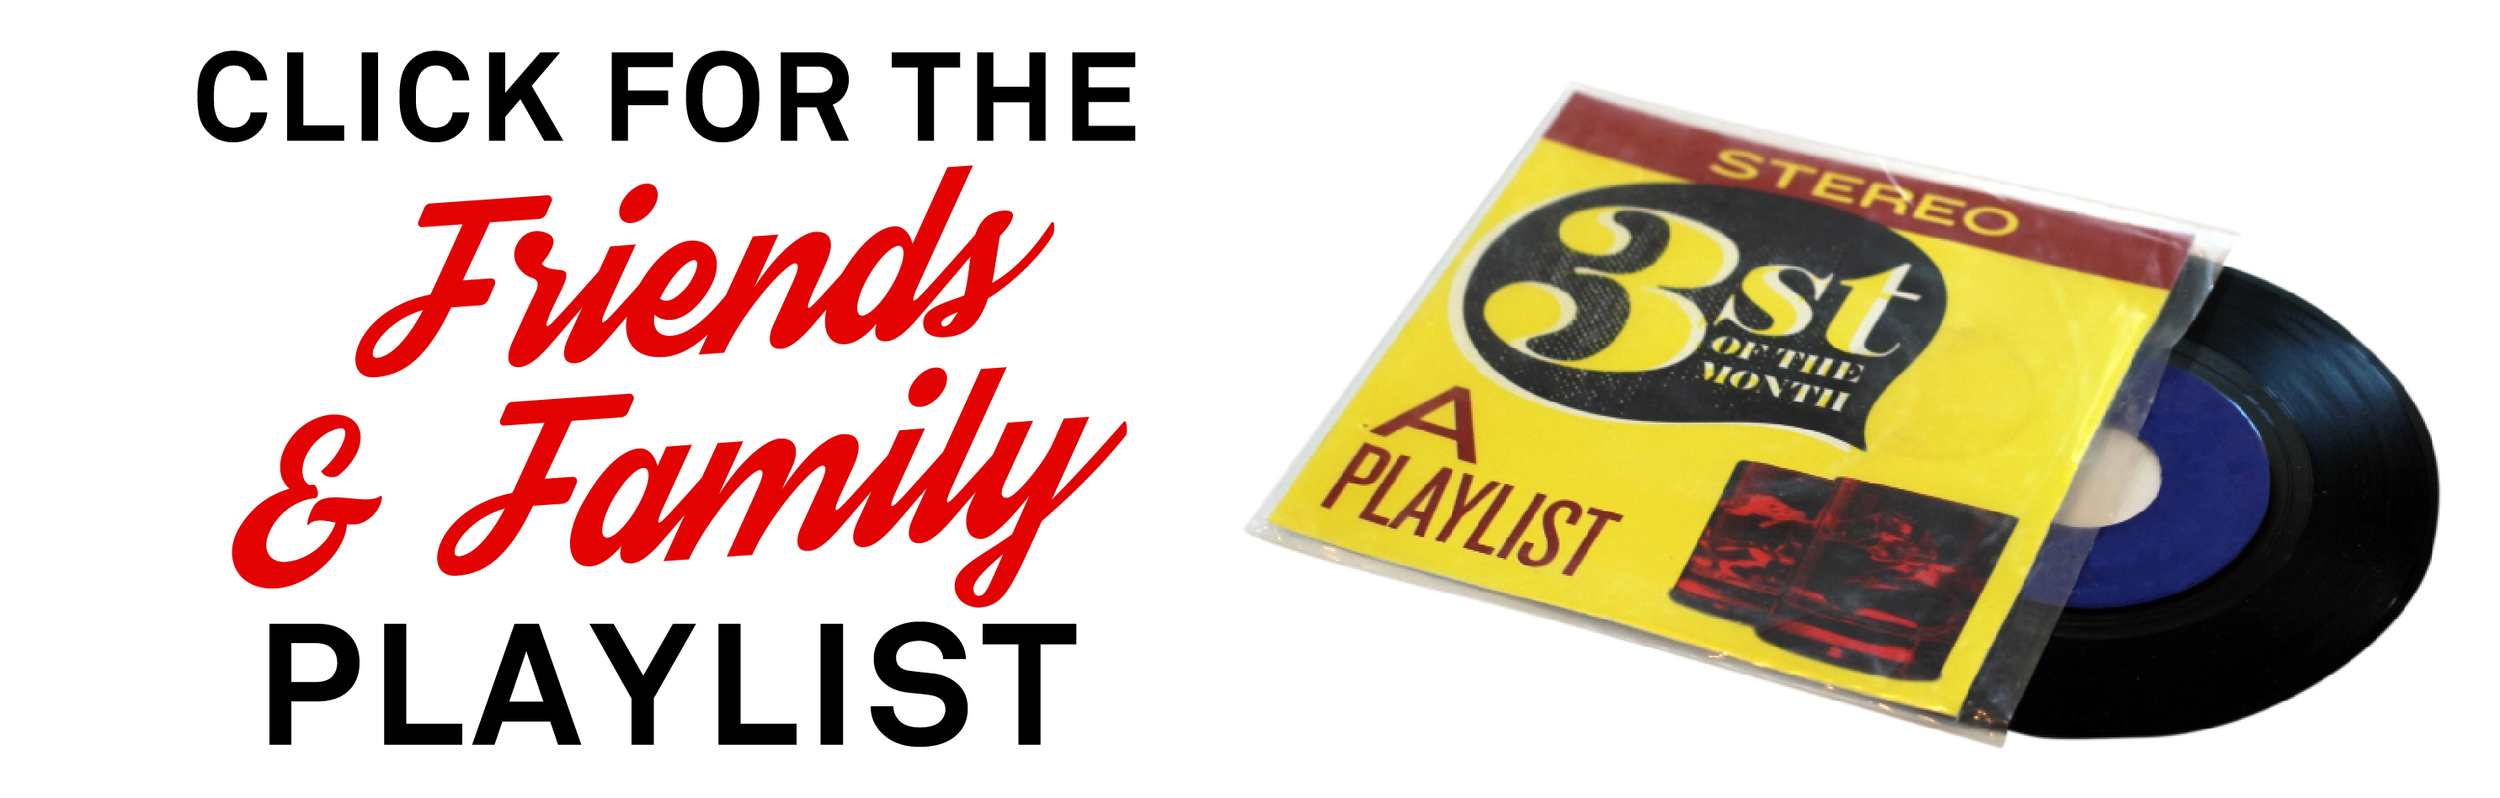 """Listen to the 3st of the Month """"Friends & Family"""" playlist on Spotify!"""